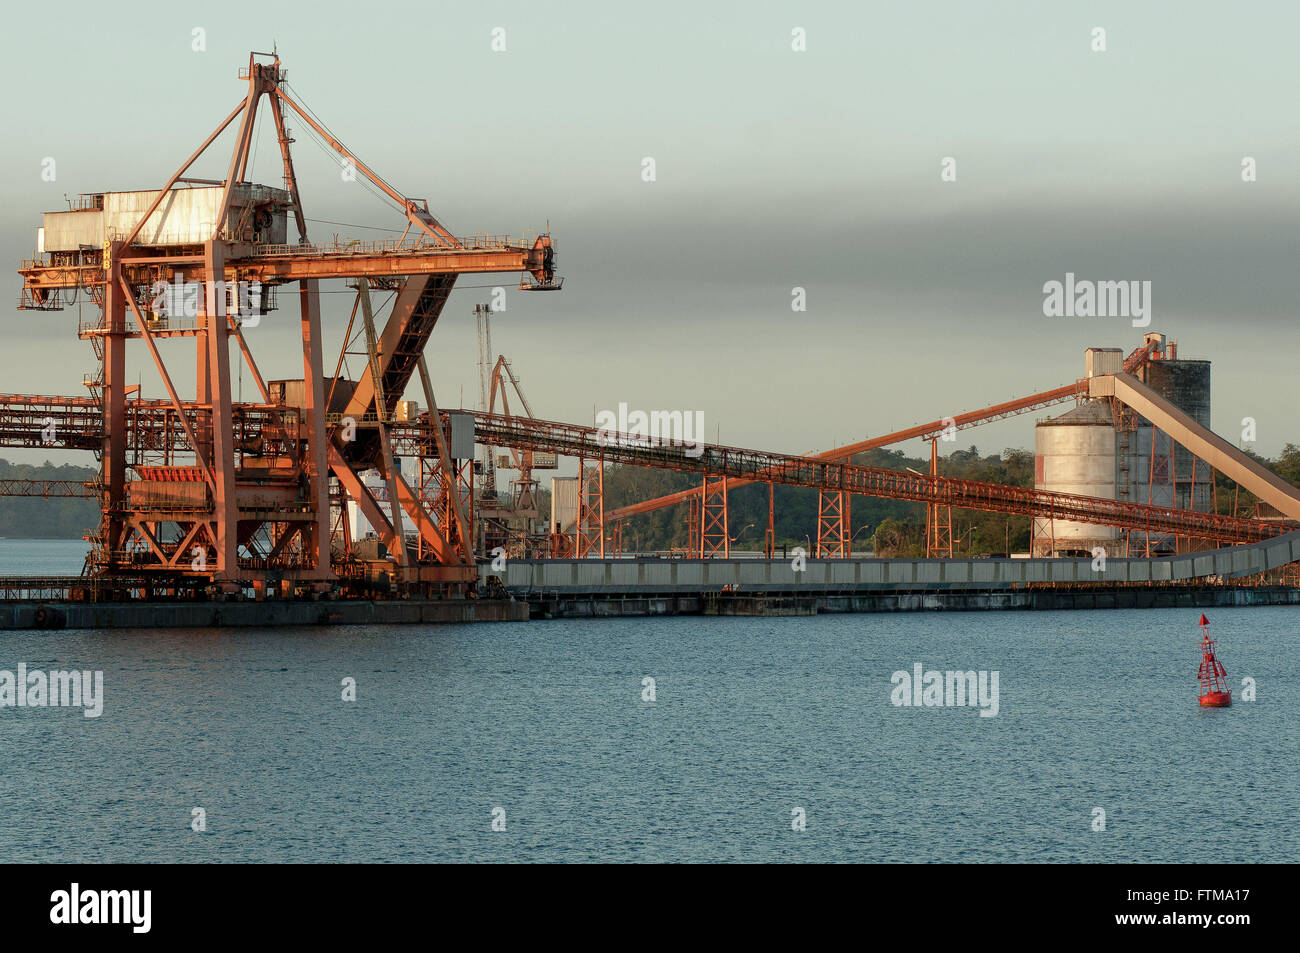 Shiploader and conveyor belt at the Port of Aratu - Stock Image